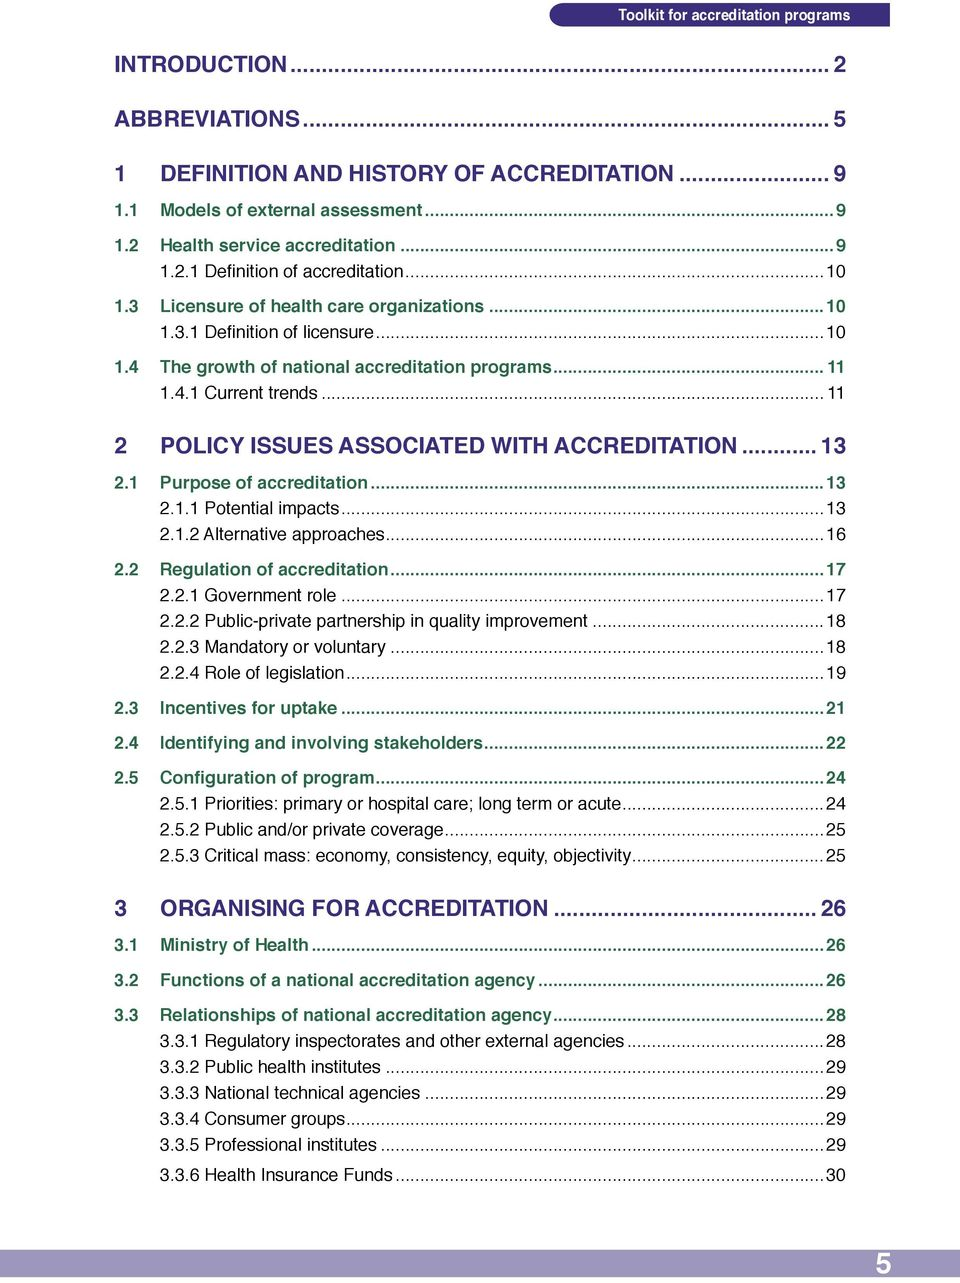 .. 11 2 POLICY ISSUES ASSOCIATED WITH ACCREDITATION... 13 2.1 Purpose of accreditation...13 2.1.1 Potential impacts...13 2.1.2 Alternative approaches...16 2.2 Regulation of accreditation...17 2.2.1 Government role.